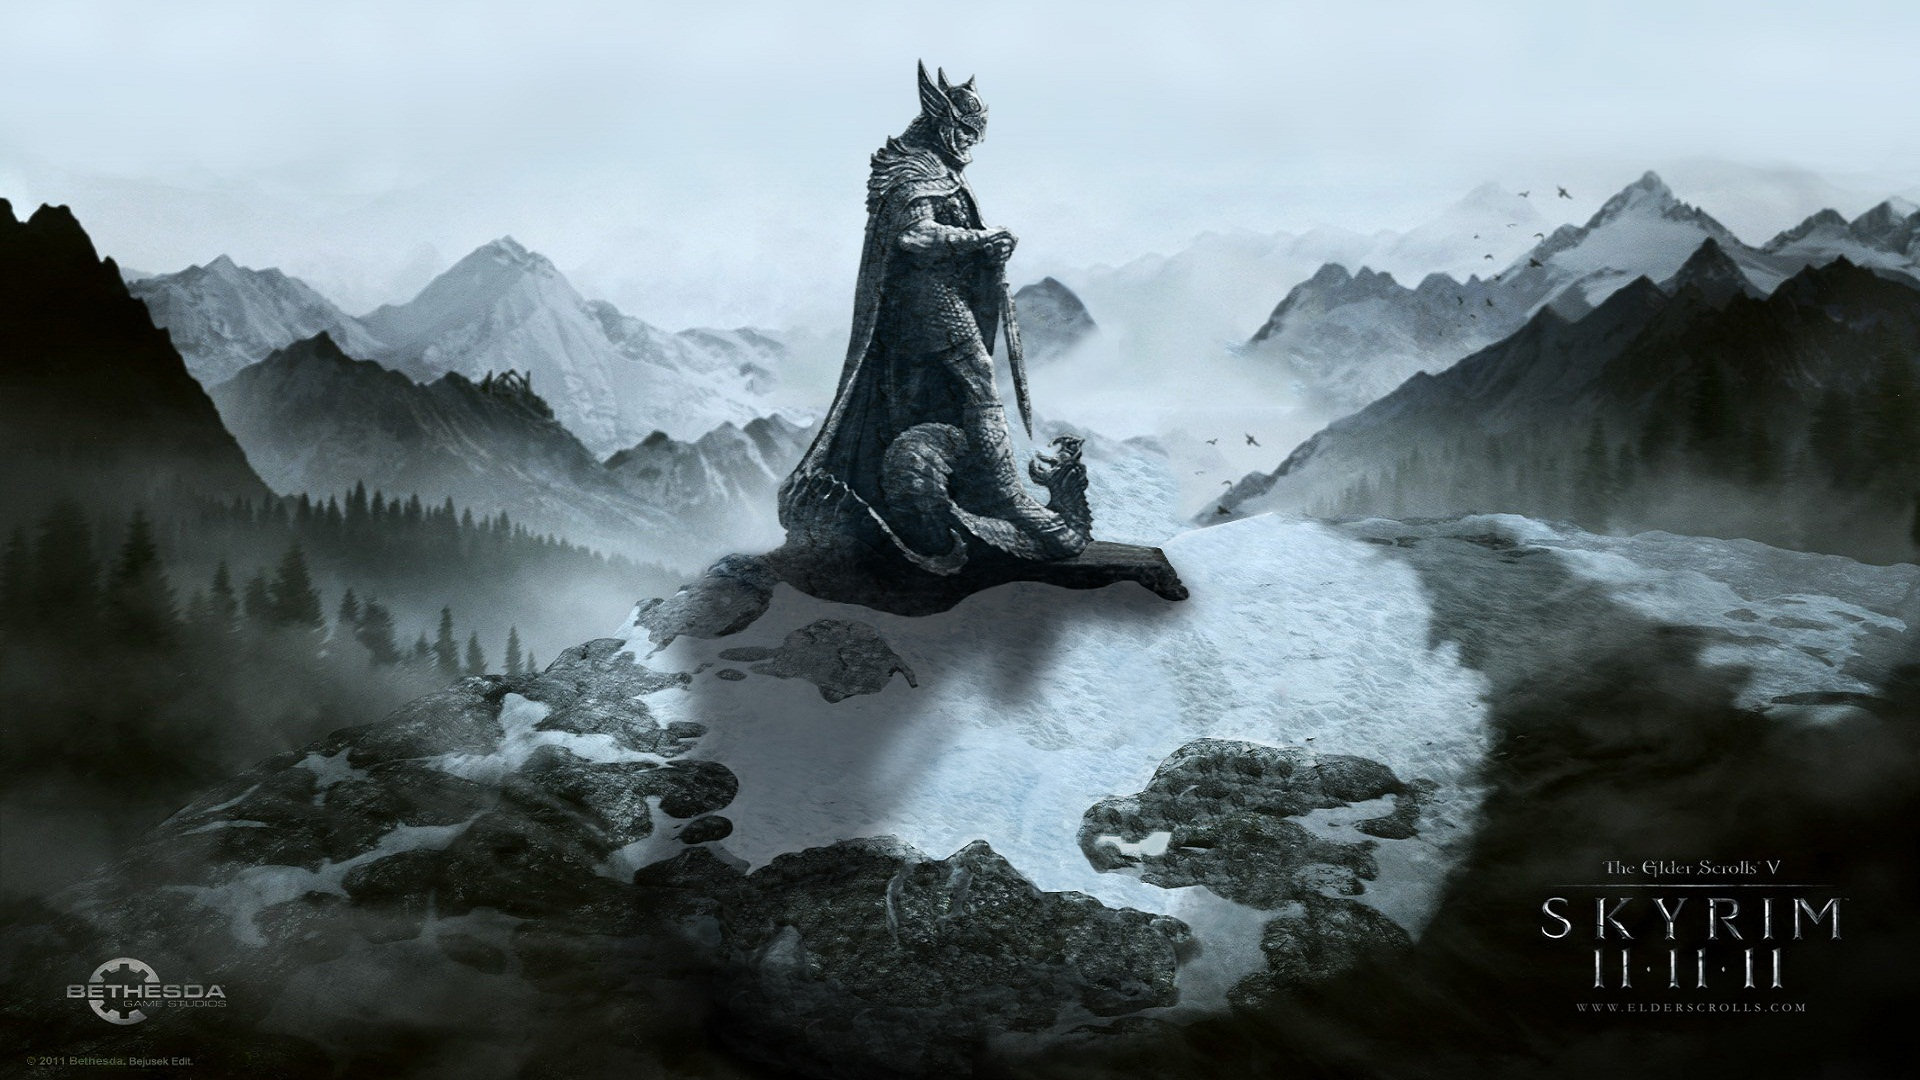 Free Download The Elder Scrolls V Skyrim Wallpapers Downloads